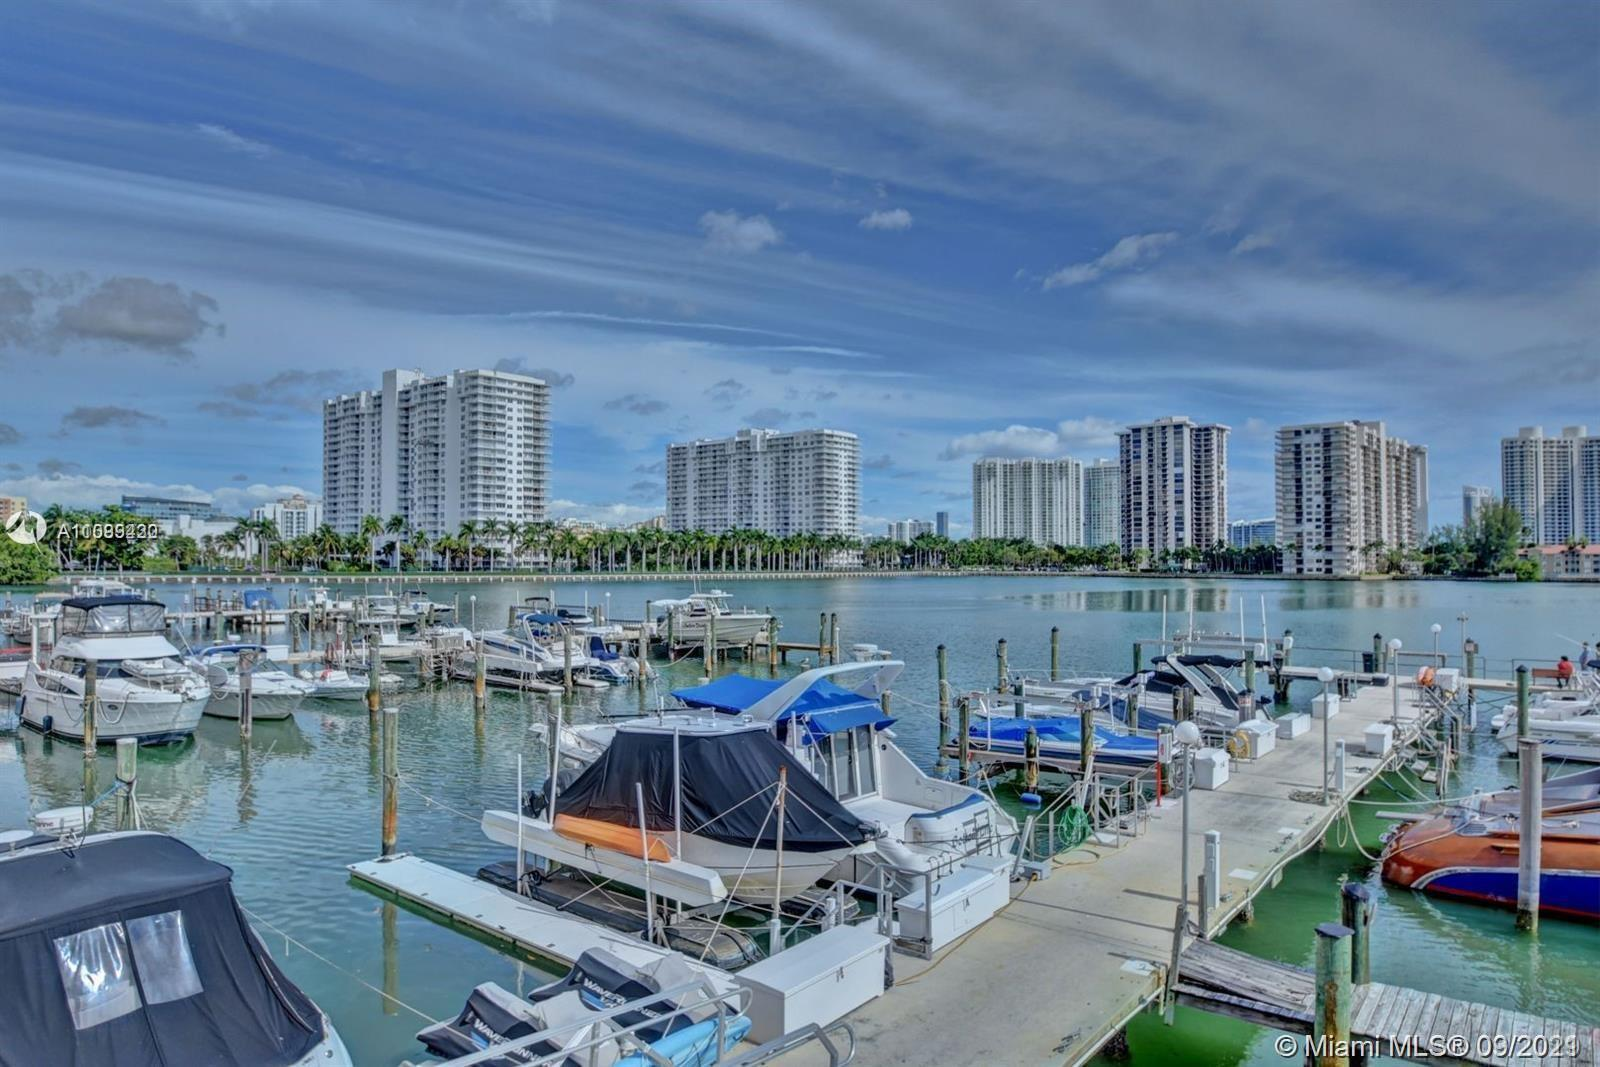 Condo Located in the Heart of Aventura! This 1 Bedroom 1 full bathroom comes fully furnished. Rare t